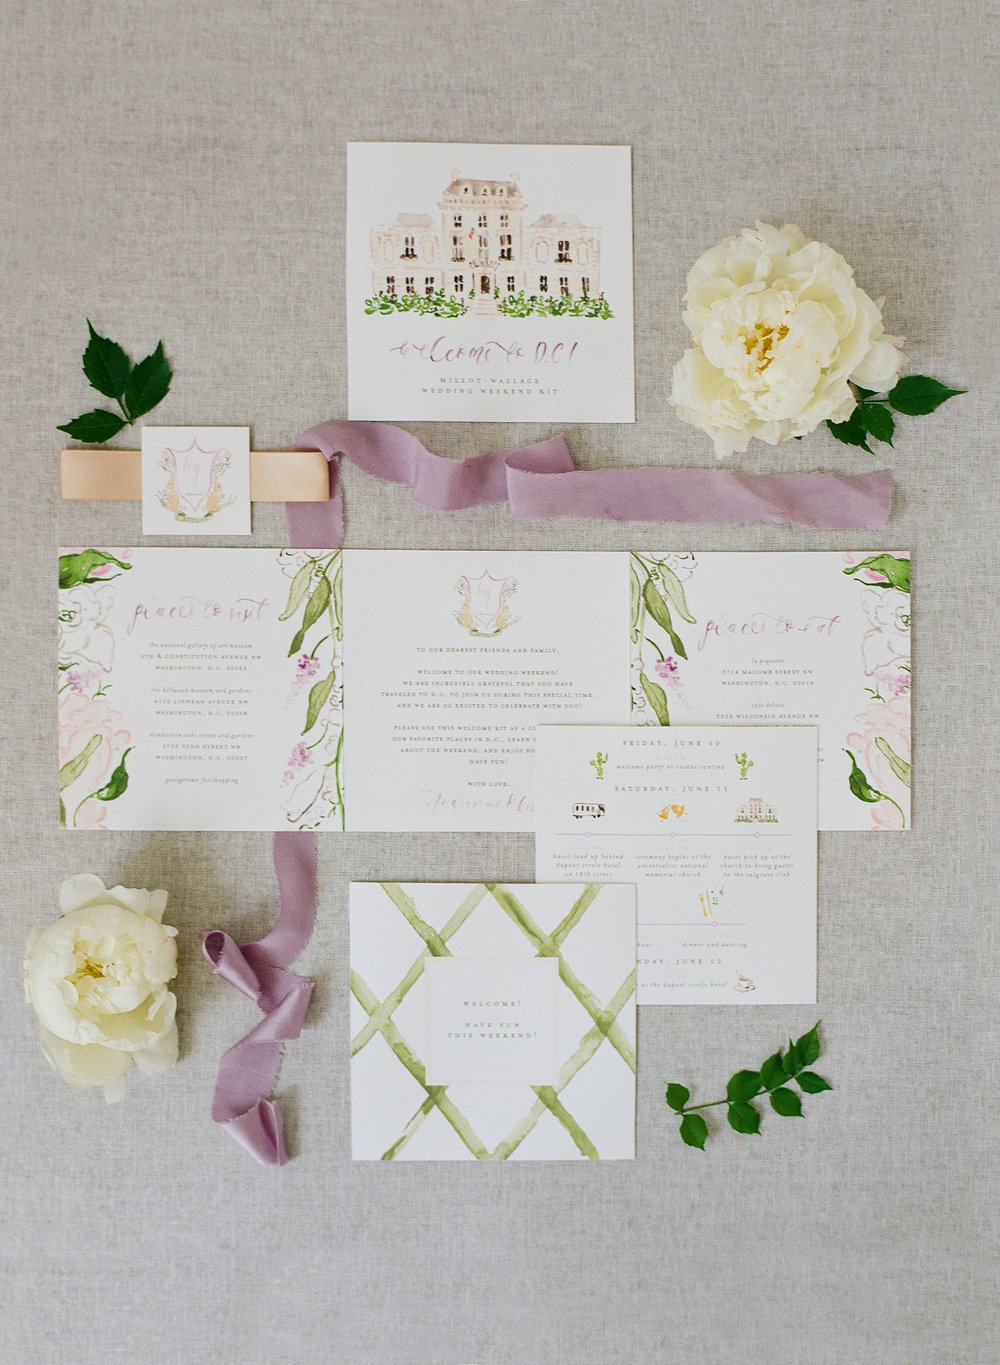 Custom Watercolor D.C. Wedding Welcome Guide by Simply Jessica Marie | Audra Wrisley Photography